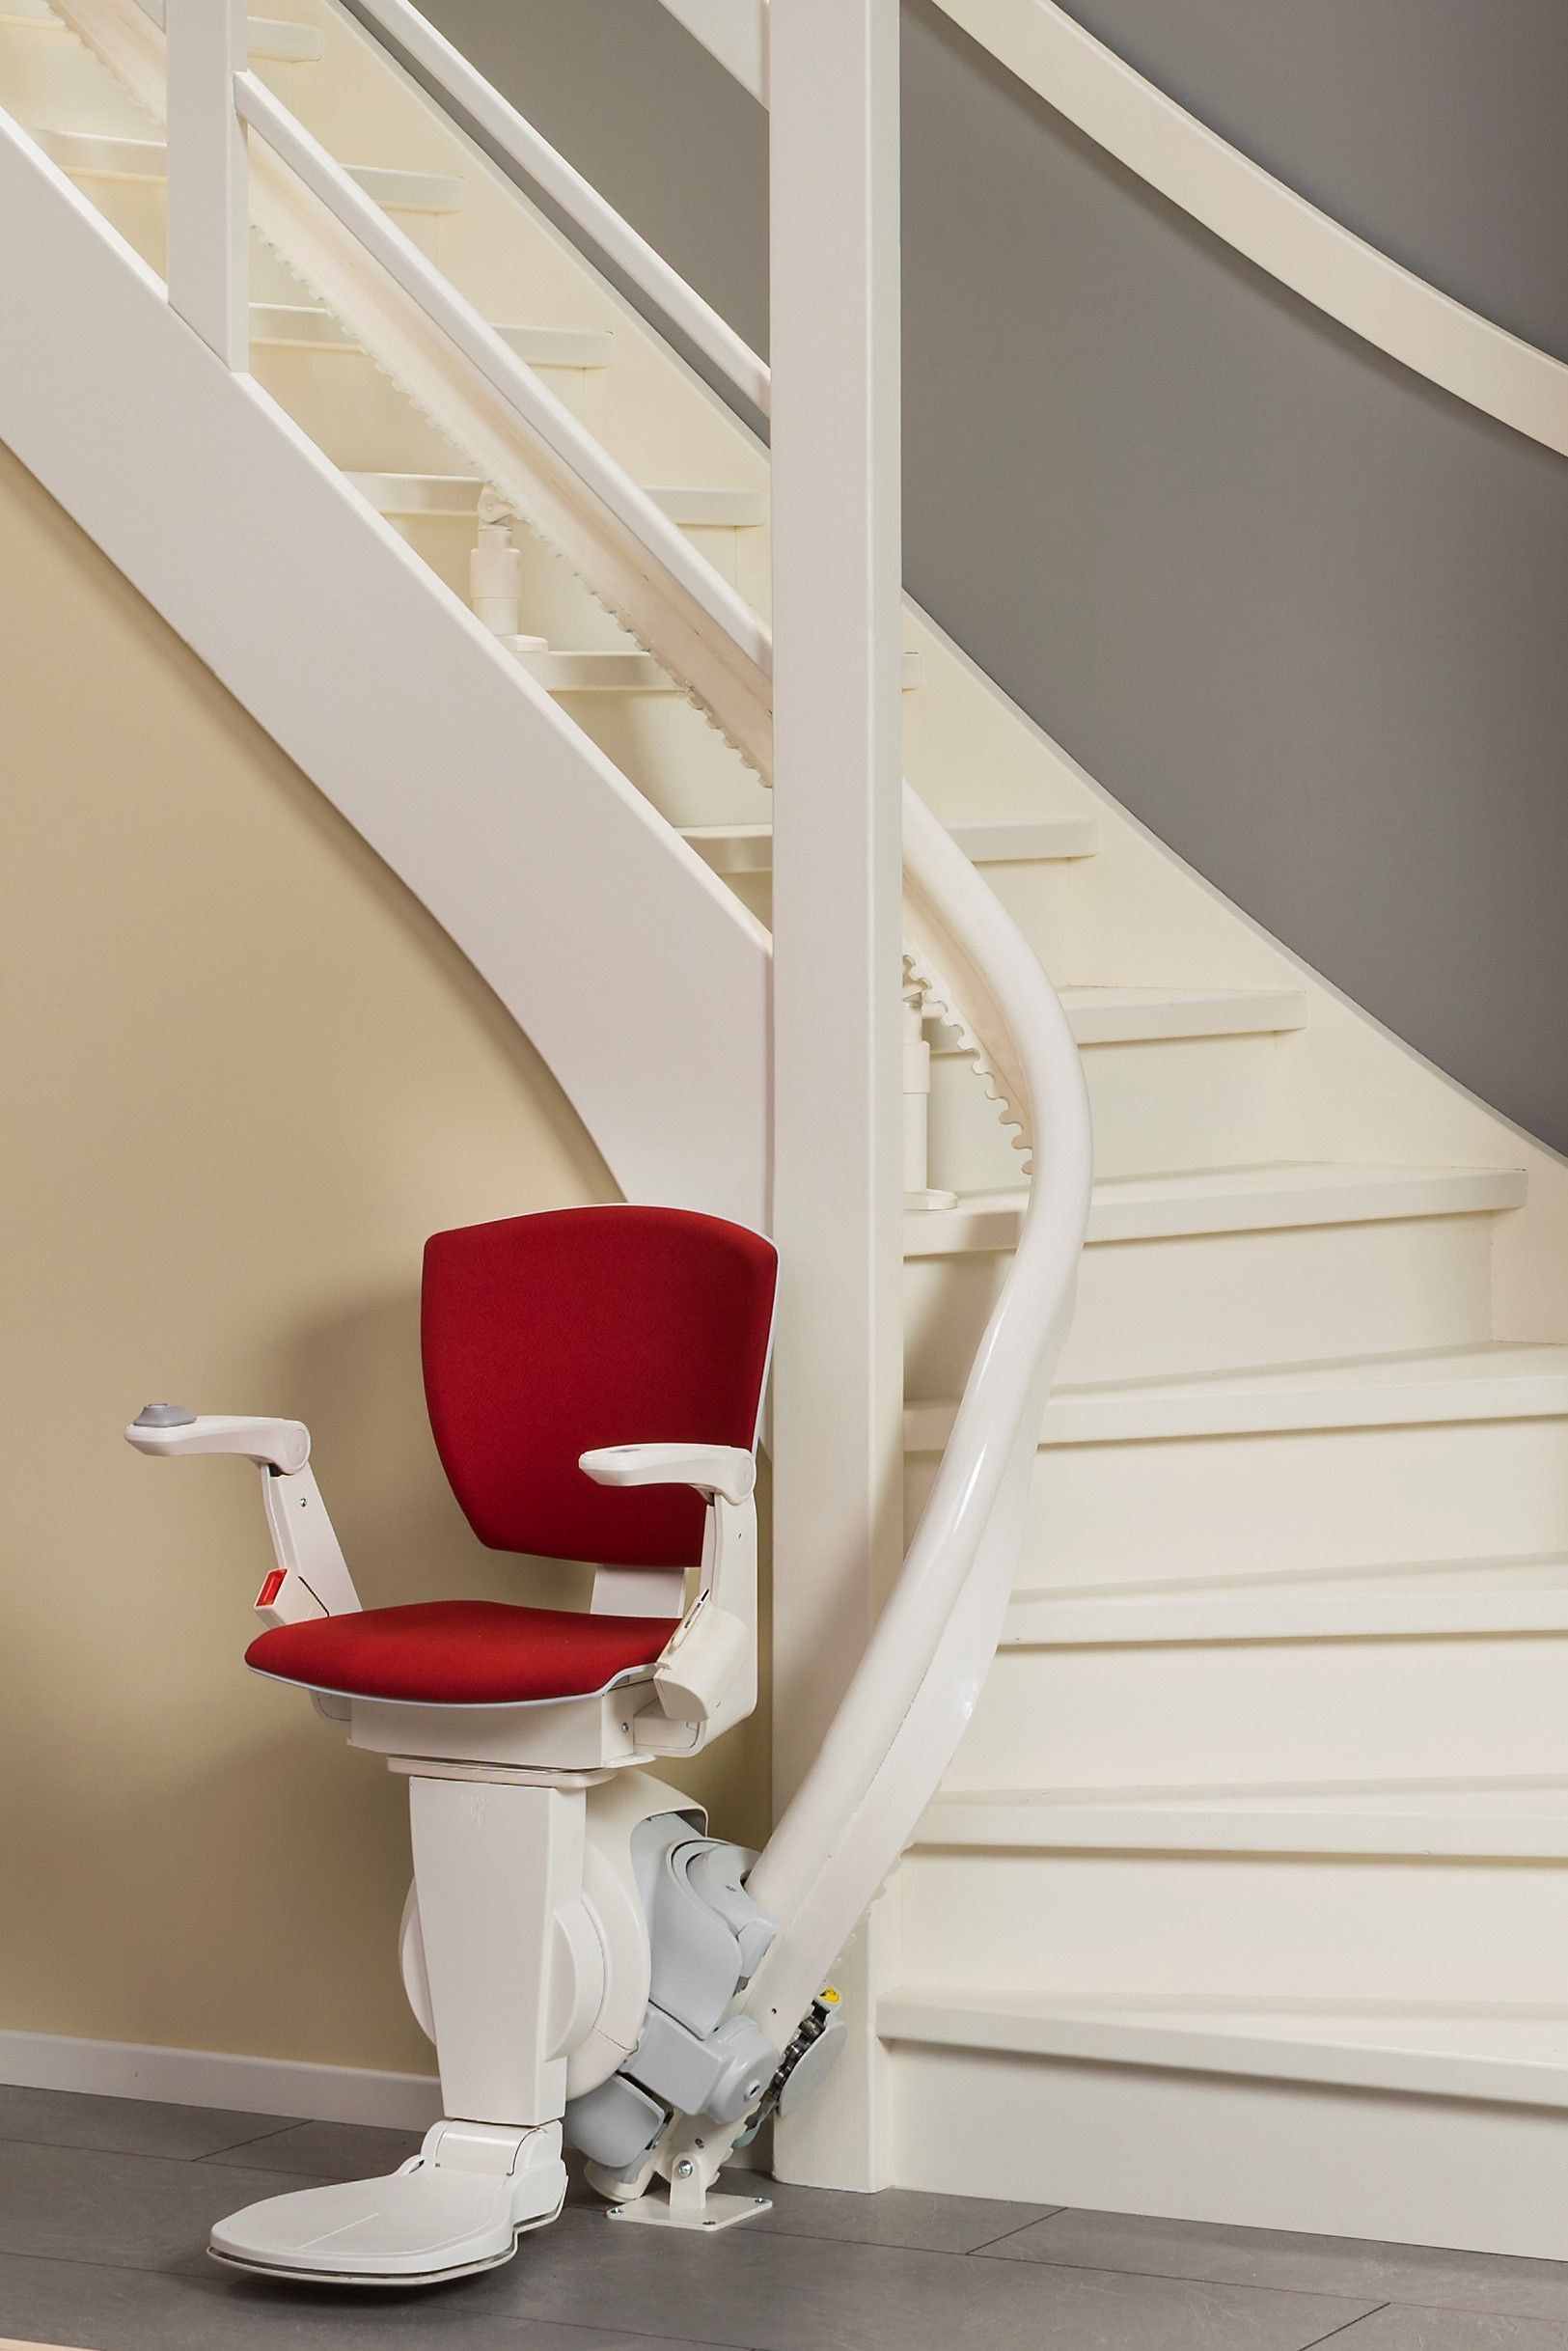 Otolift Air Curved Stairlift Curved Staircase Sleek Design Stair Lift